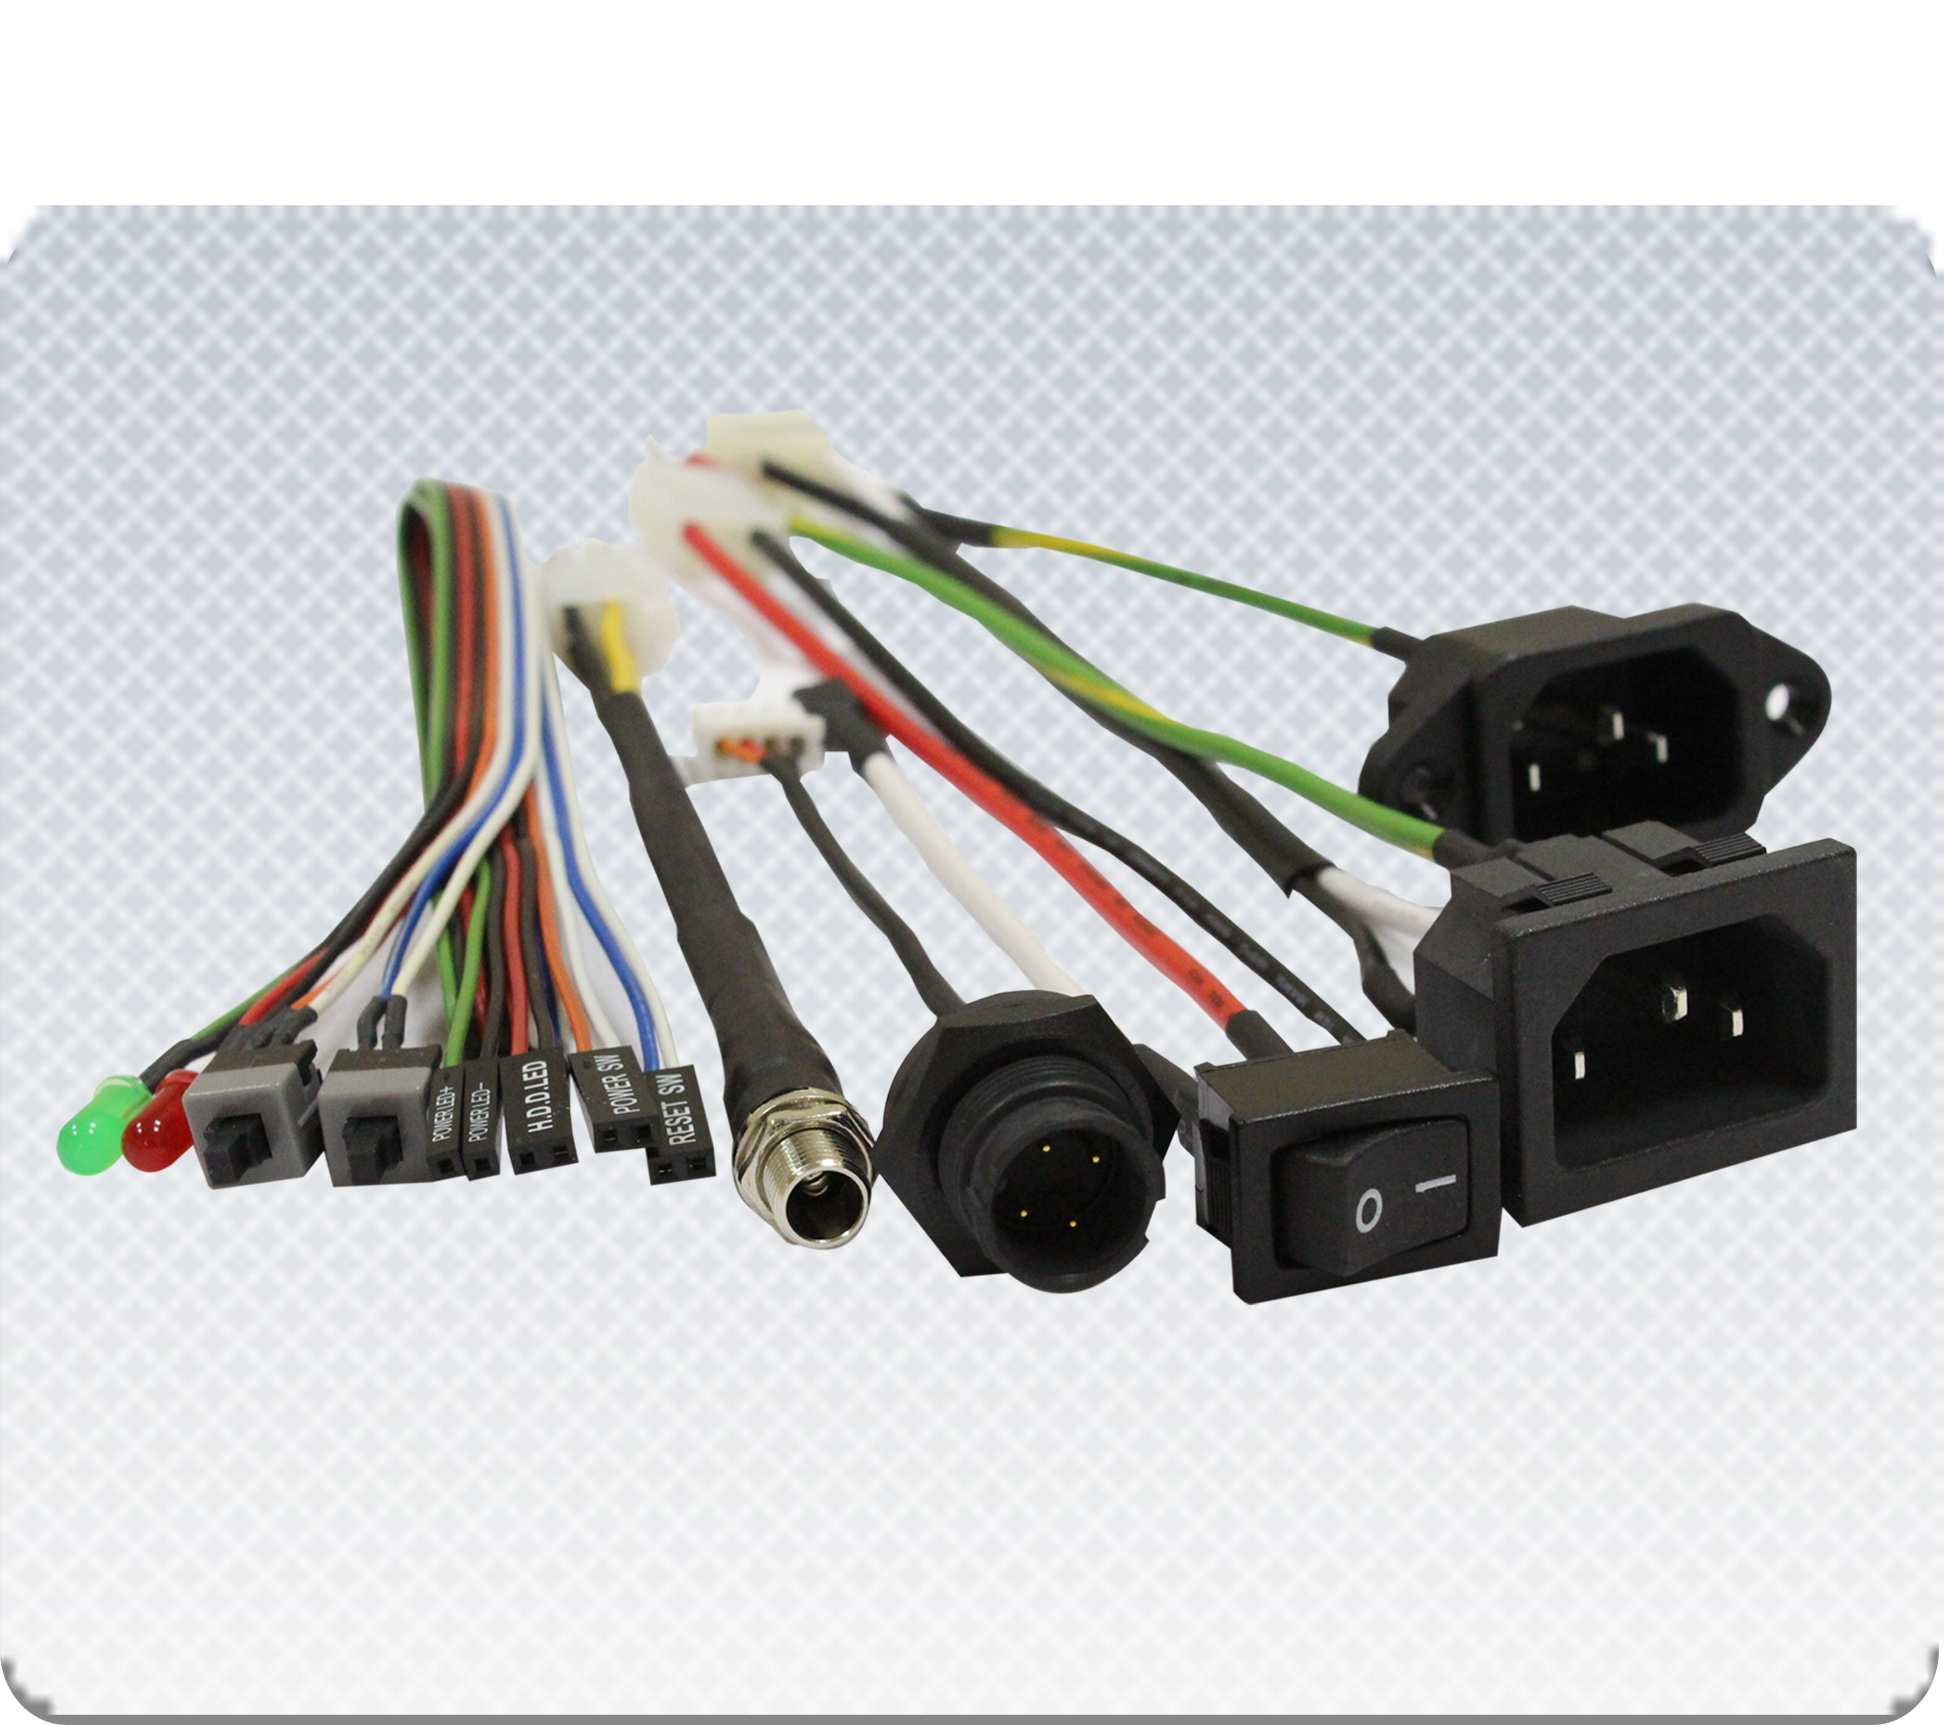 Wiring Harness(1)(3) molded cable, molded cable manufacturer & supplier molded wire harness at eliteediting.co